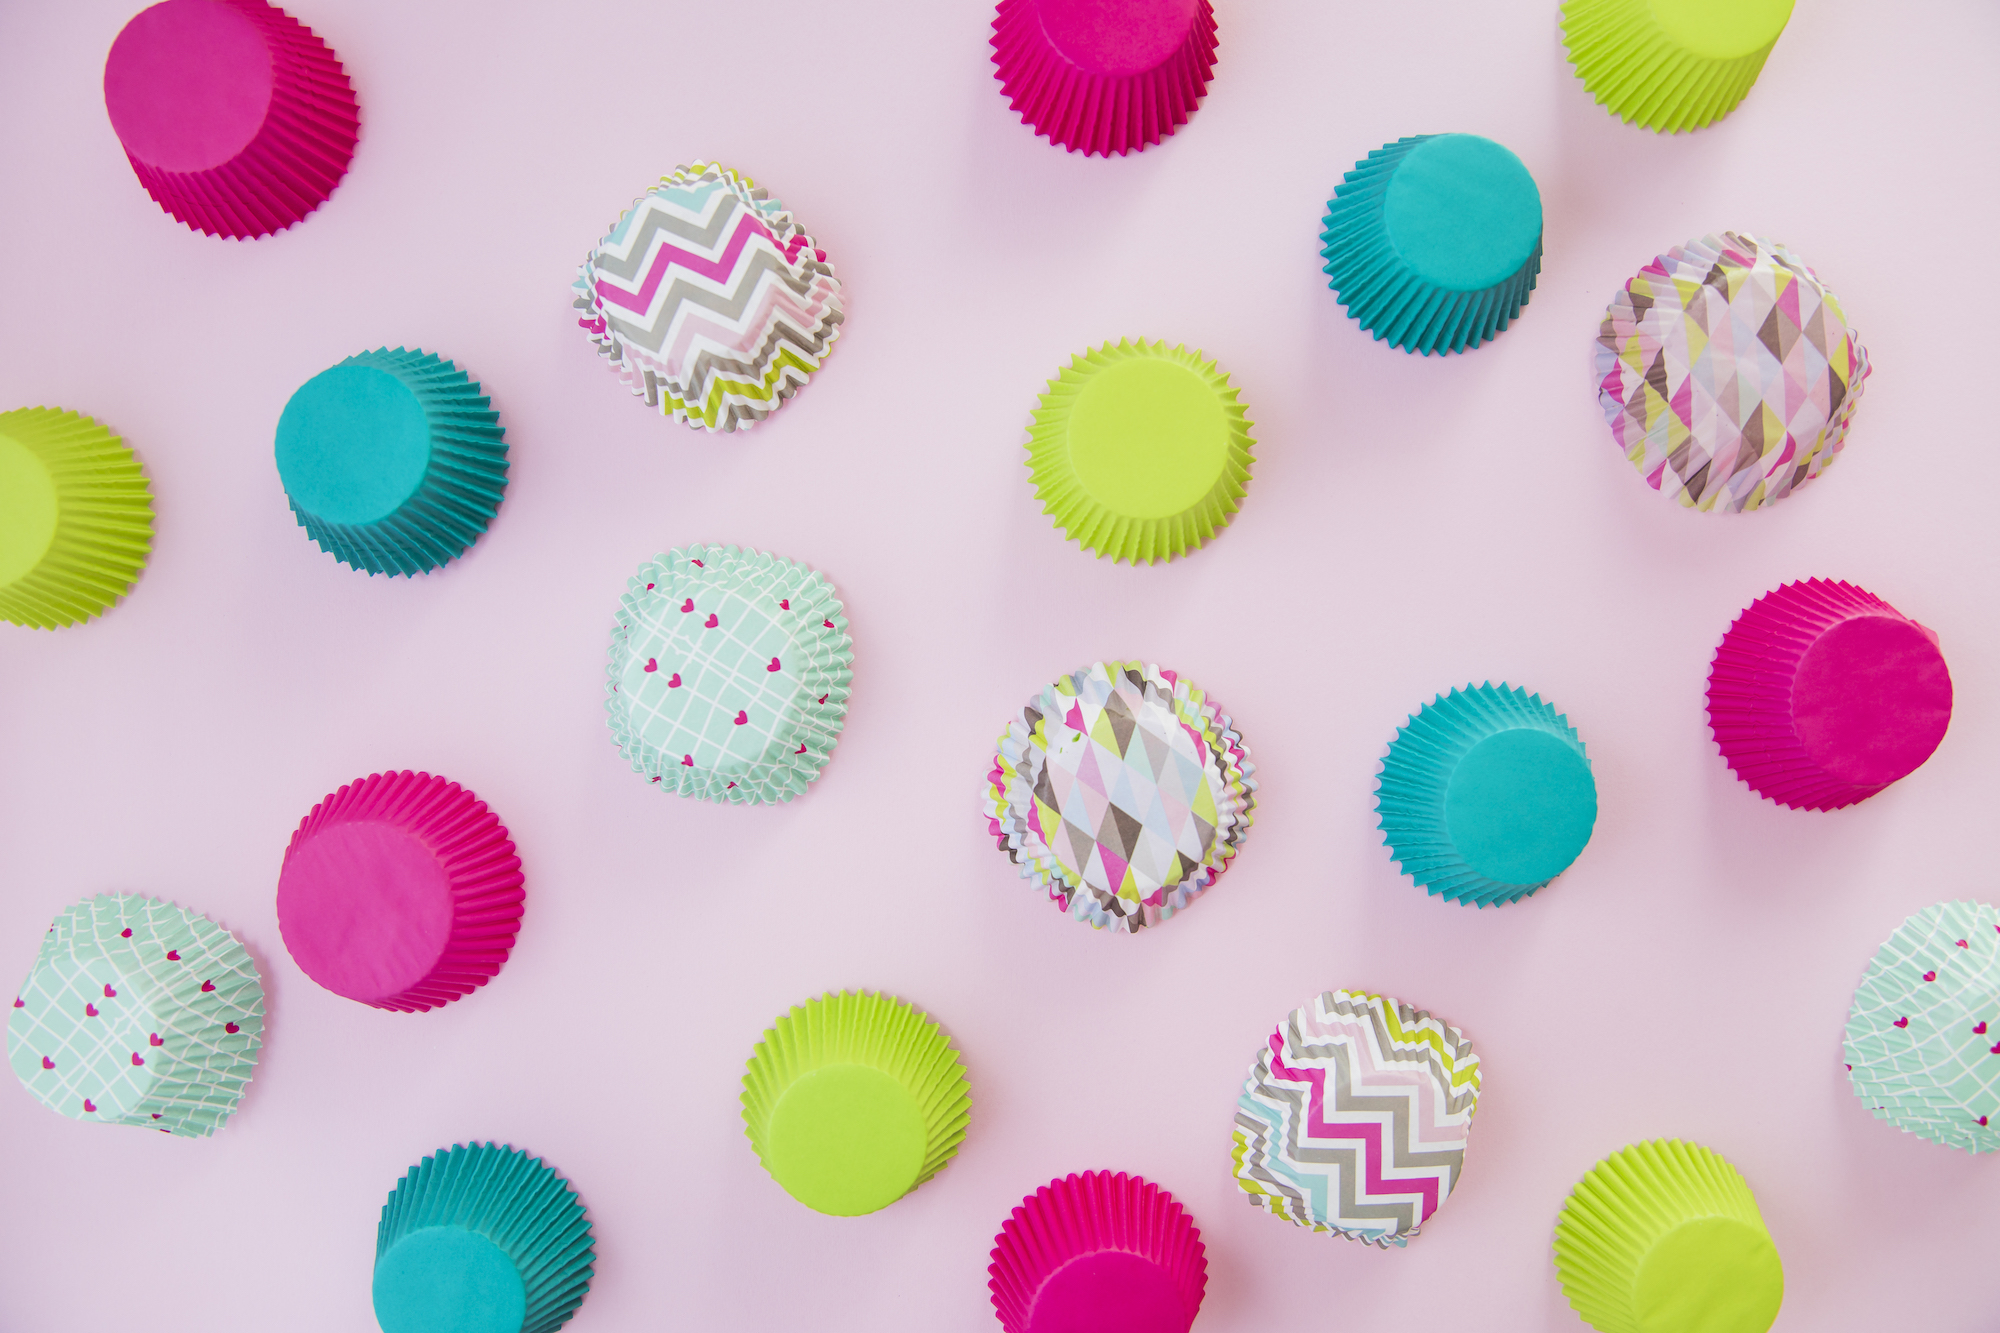 Business help for bakers and sweet treat makers. This is an image of cupcake wrappers.